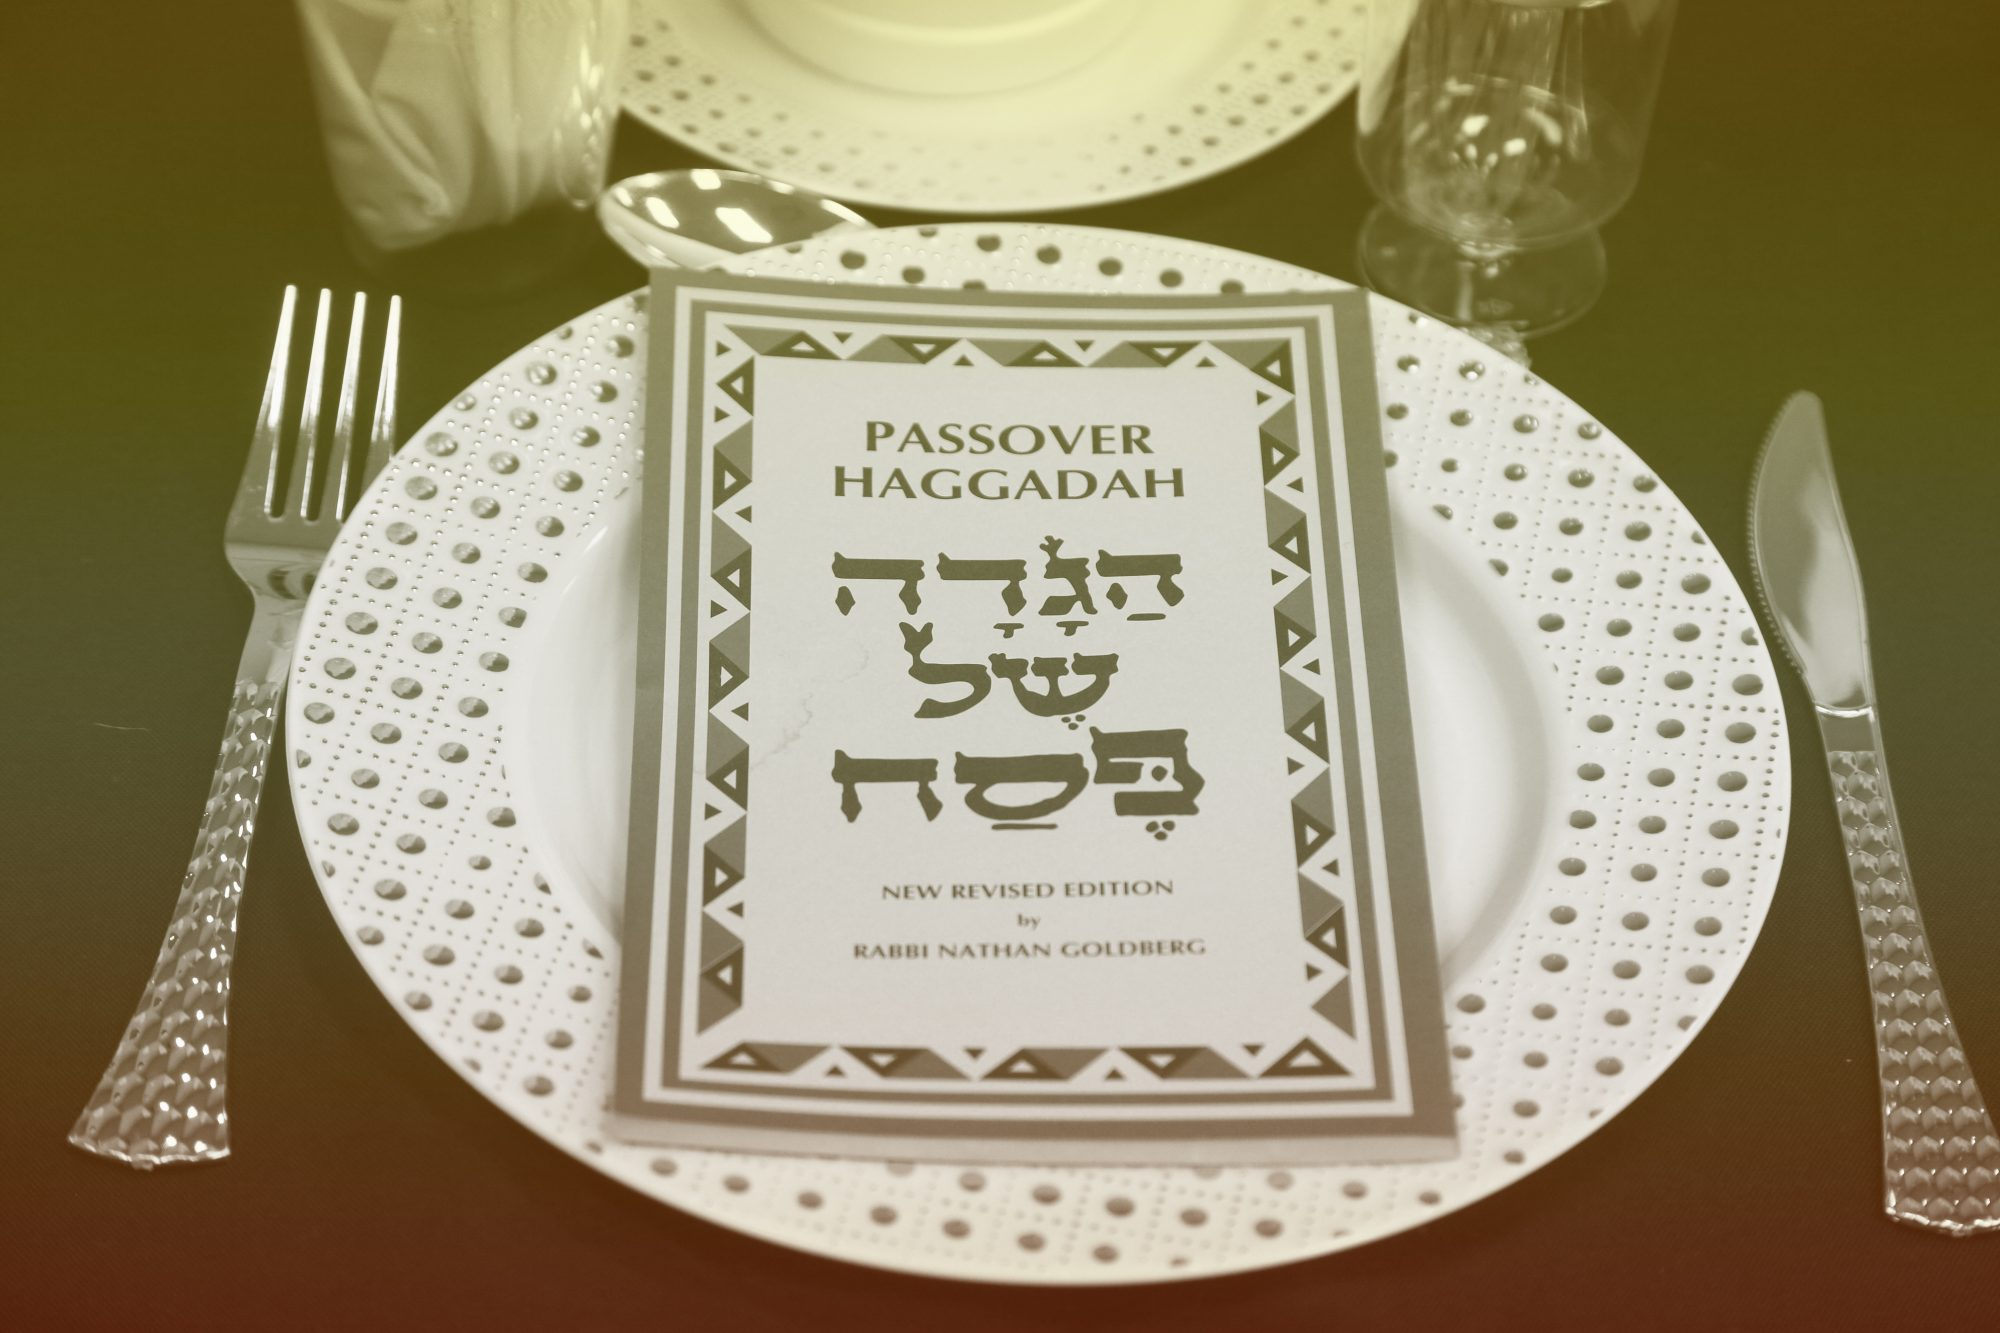 Passover Haggadah rests on a plate during a Passover seder